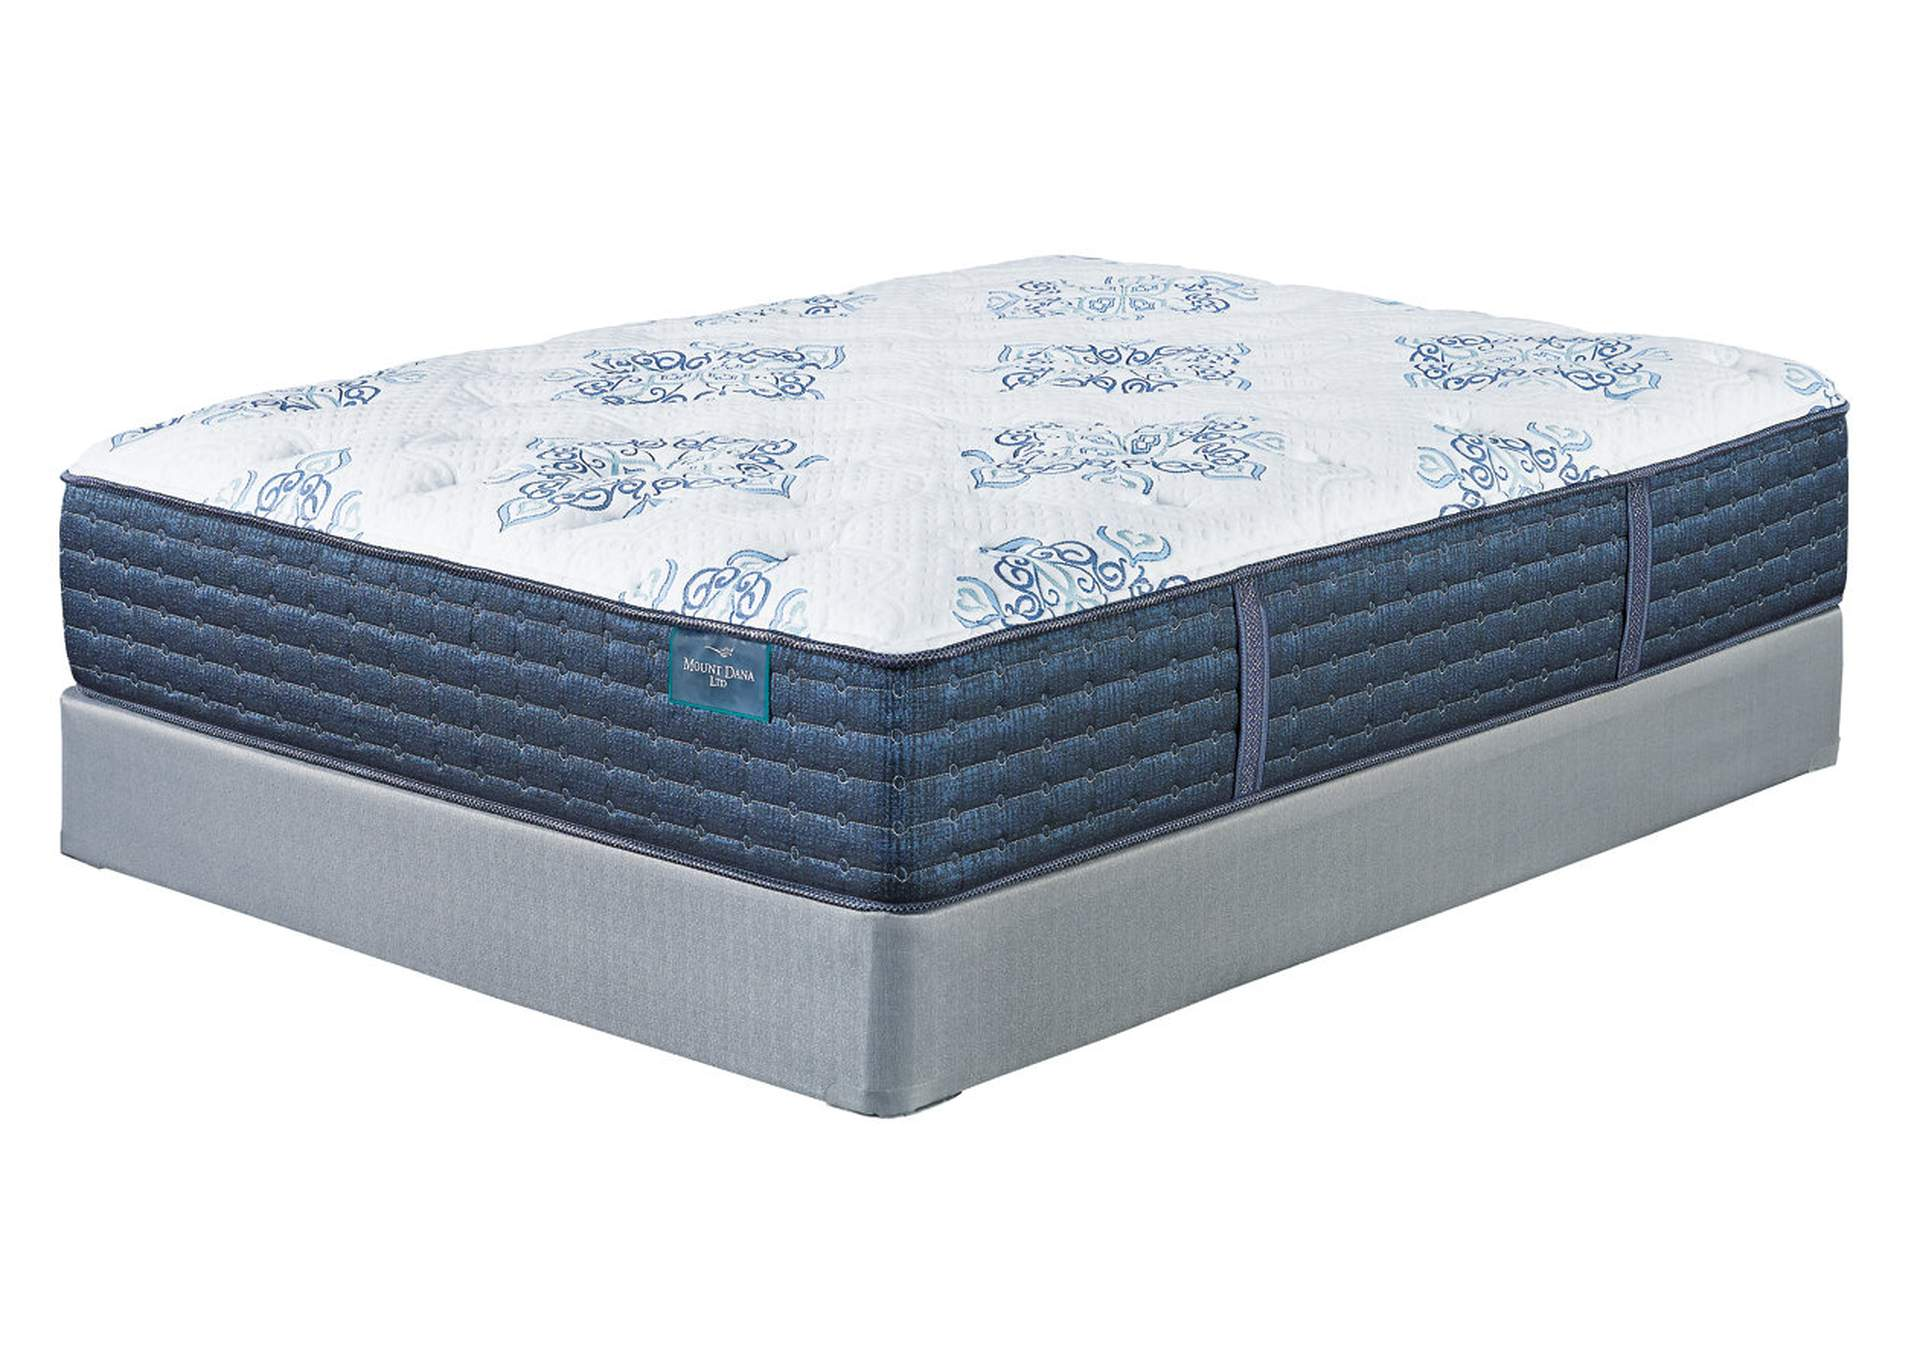 Mt. Dana Plush White Queen Mattress,Sierra Sleep